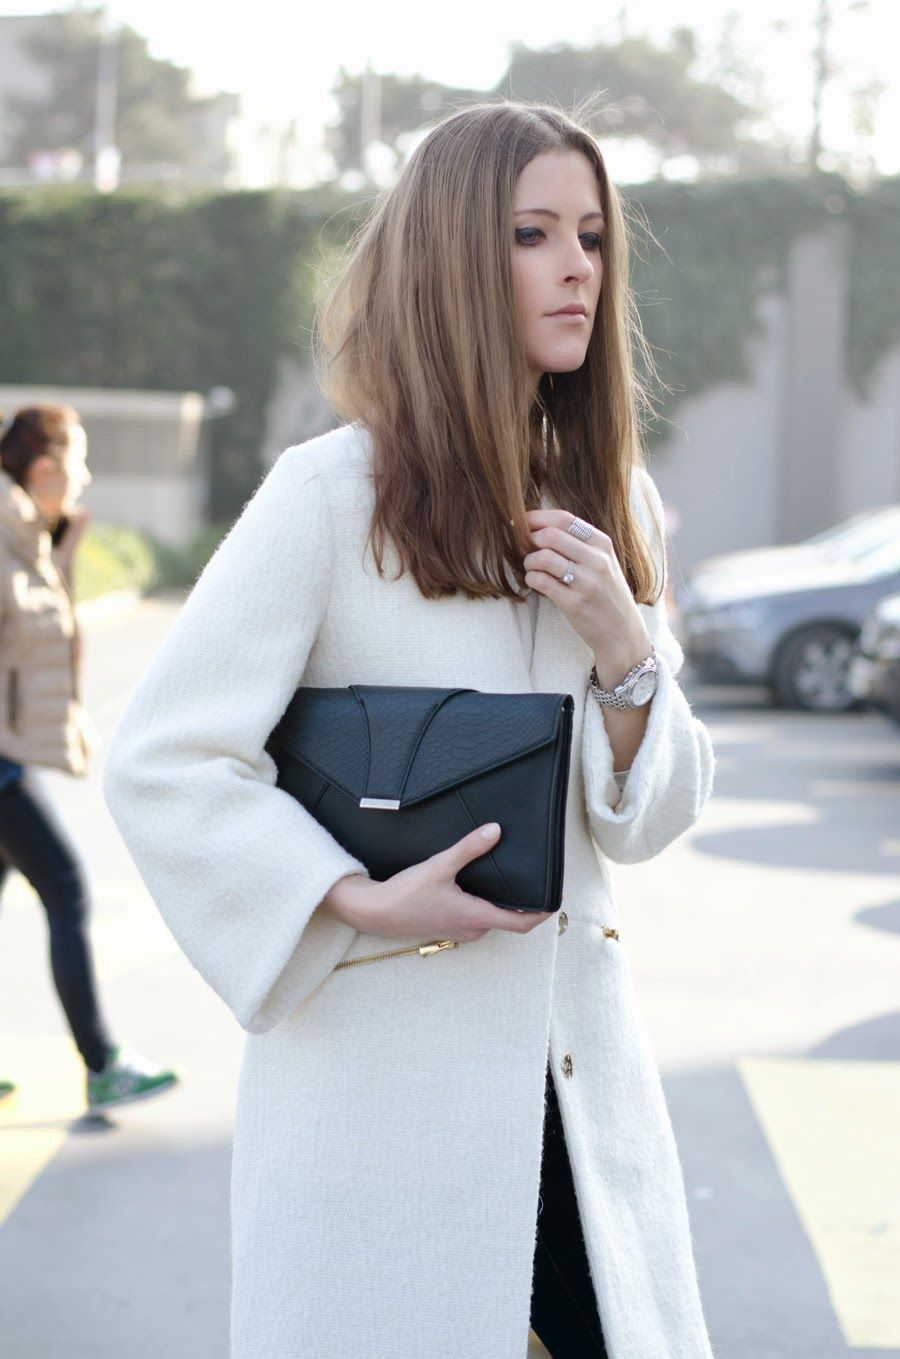 OVERSIZED | K A T E R I N A K.#fashionblogger #streetstyle #totalwhite #oversized #coat #outfit